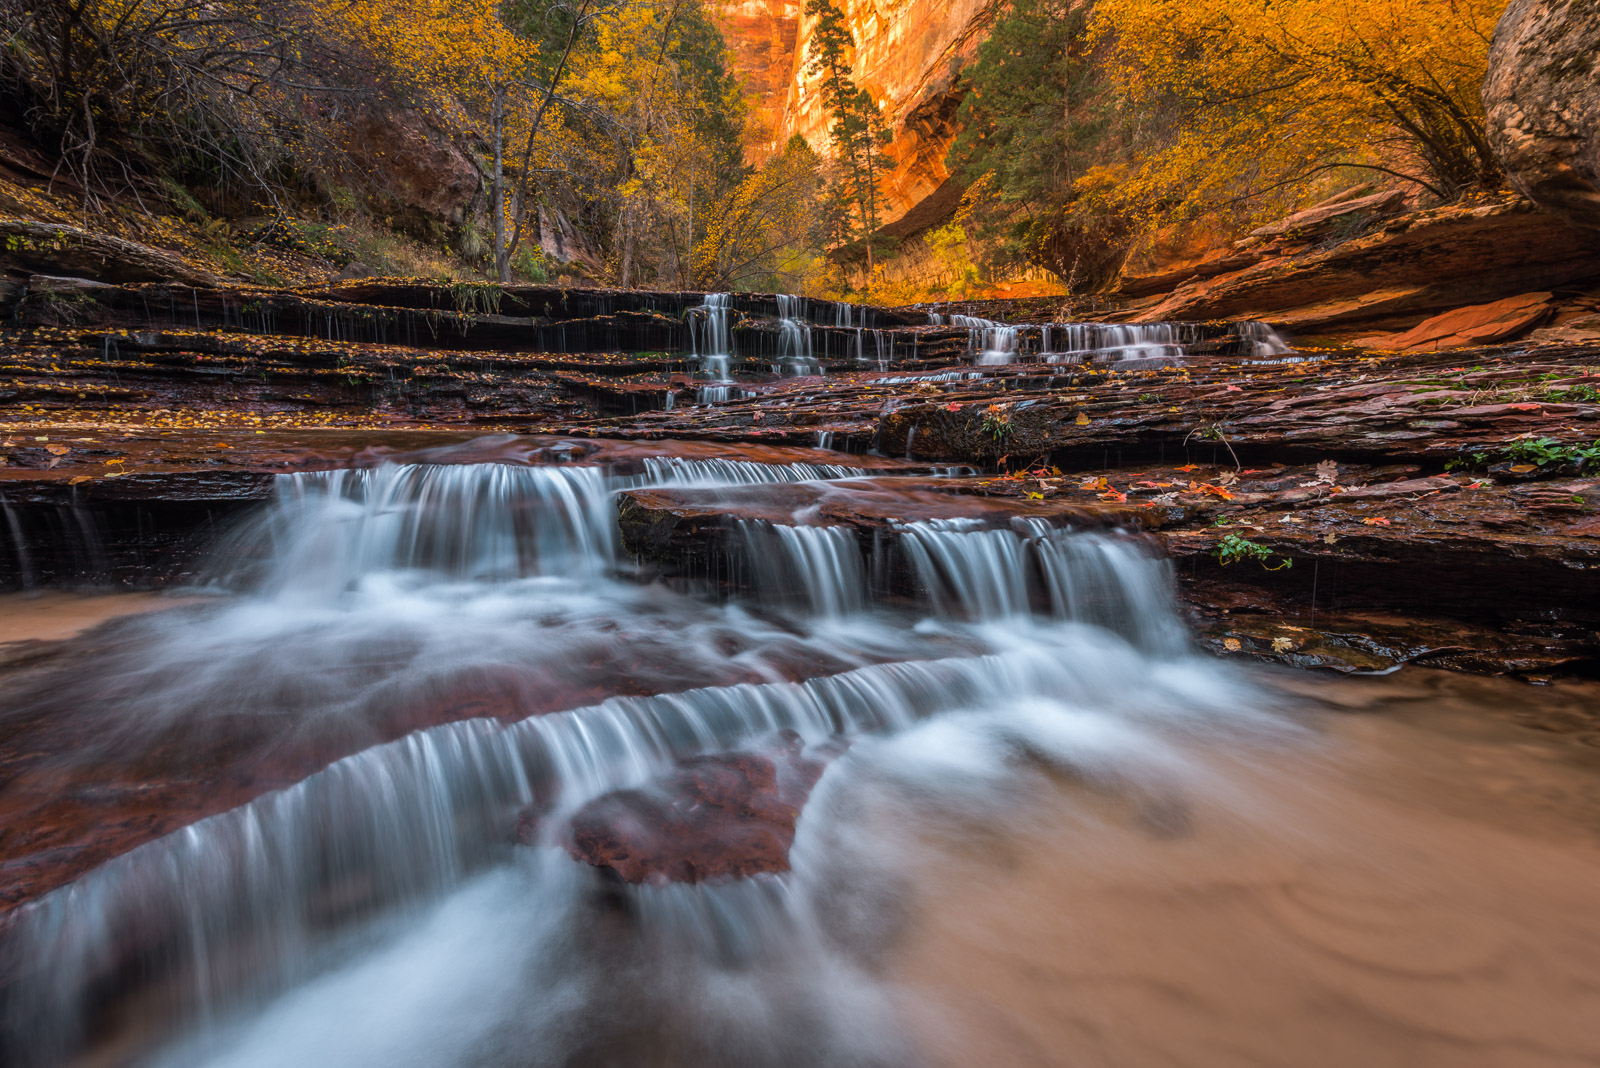 These magnificent waterfalls are located in a remote canyon in Zion National Park.